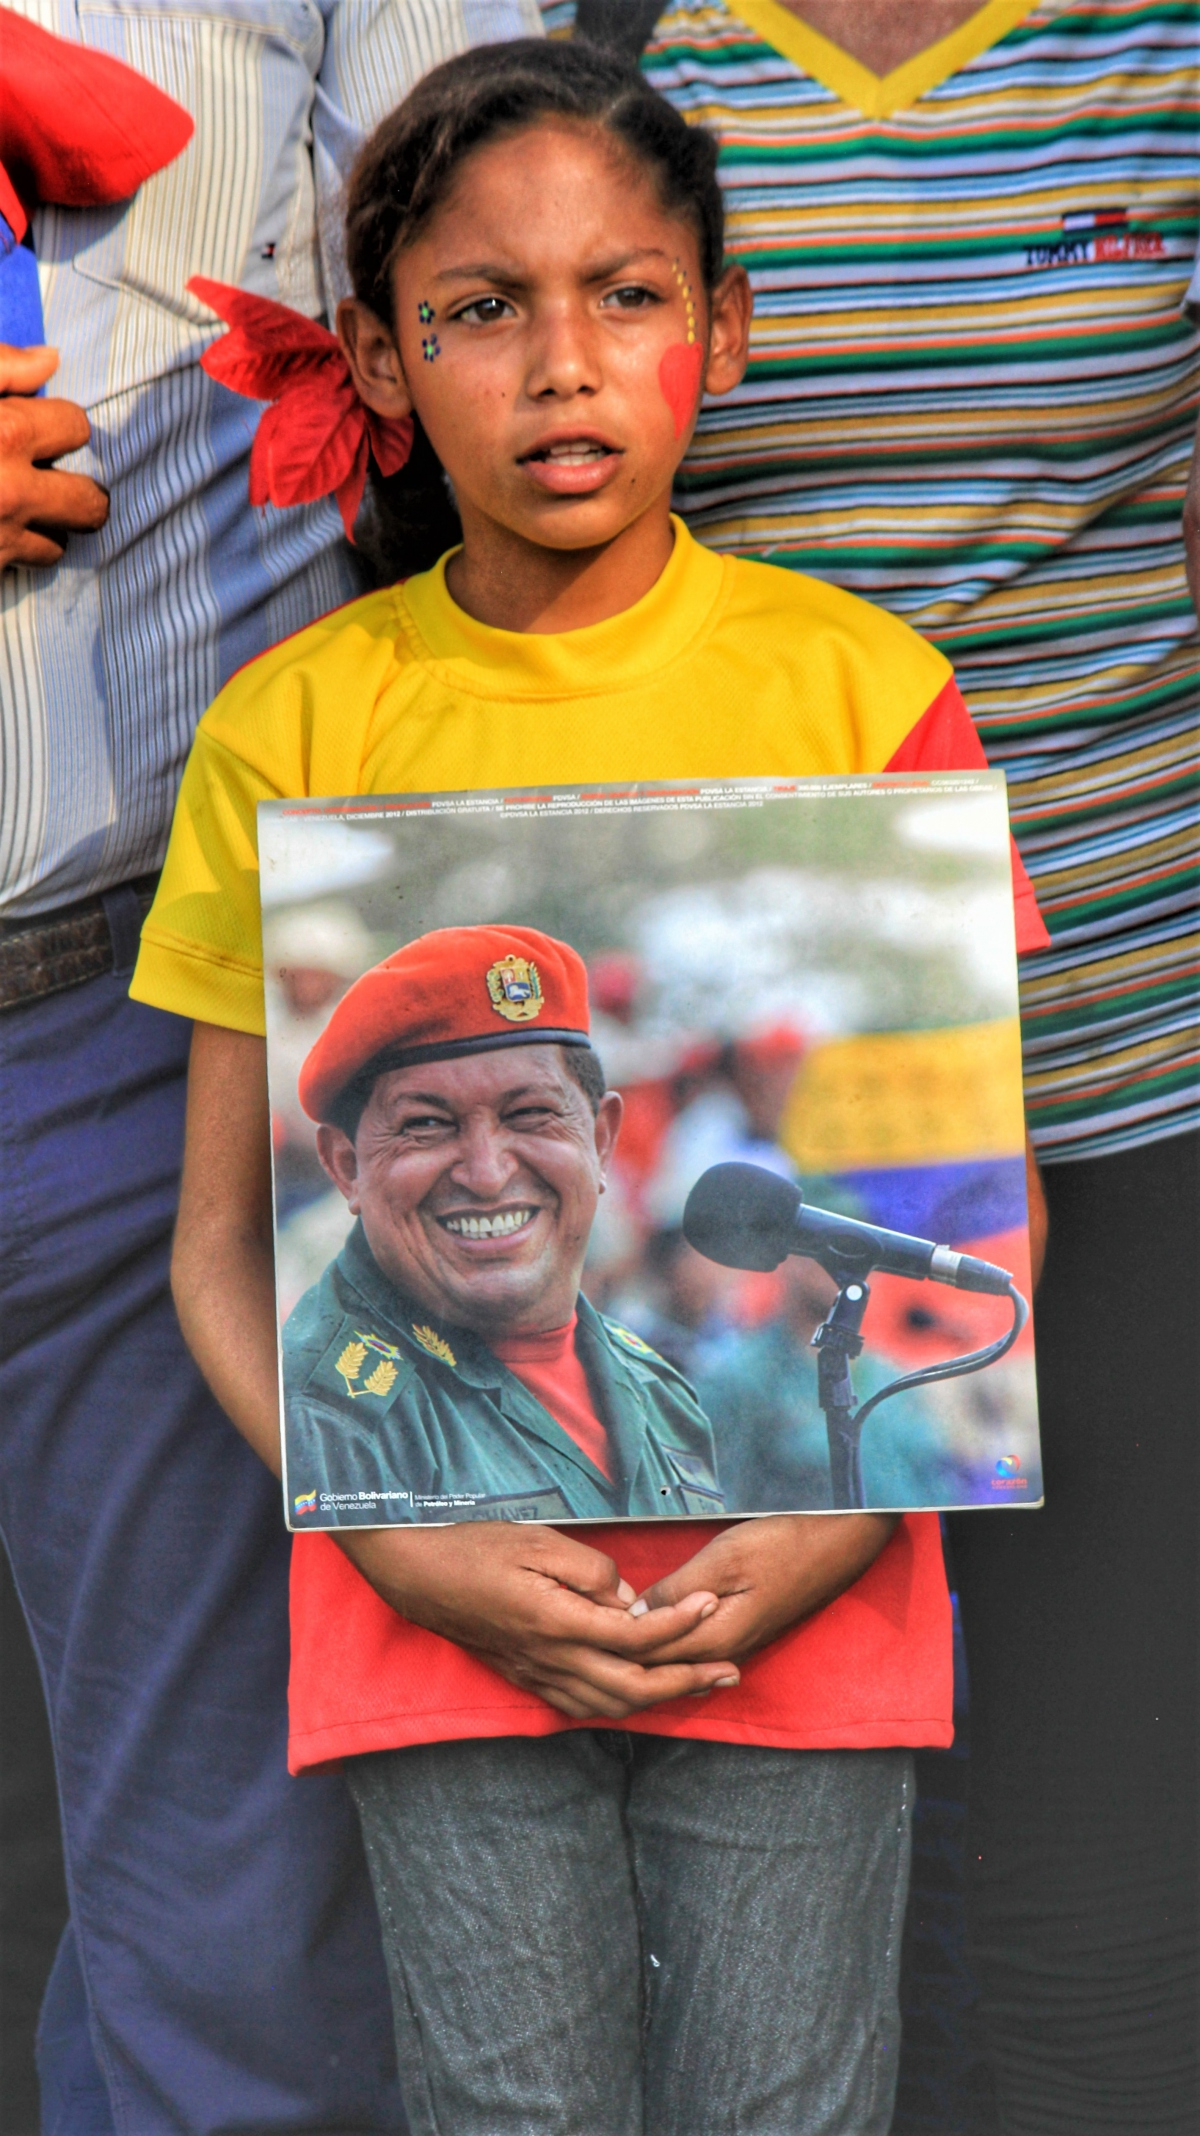 Anniversary of El Maizal Commune: Young communard commemorates Chávez